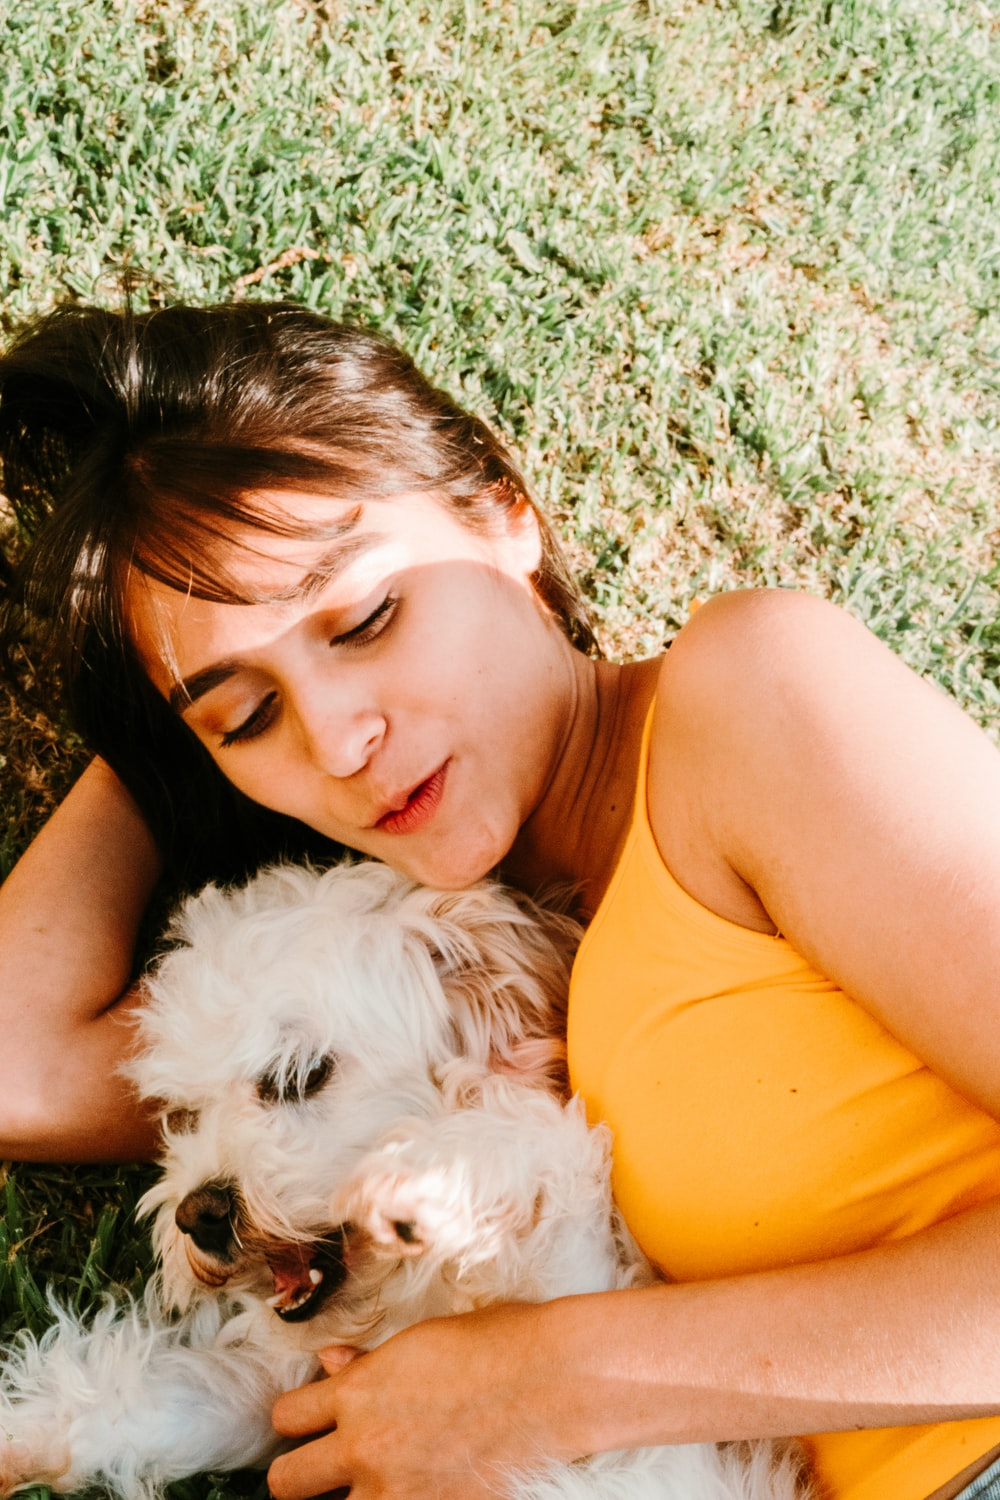 woman in orange tank top lying on green grass field with white long coated small dog